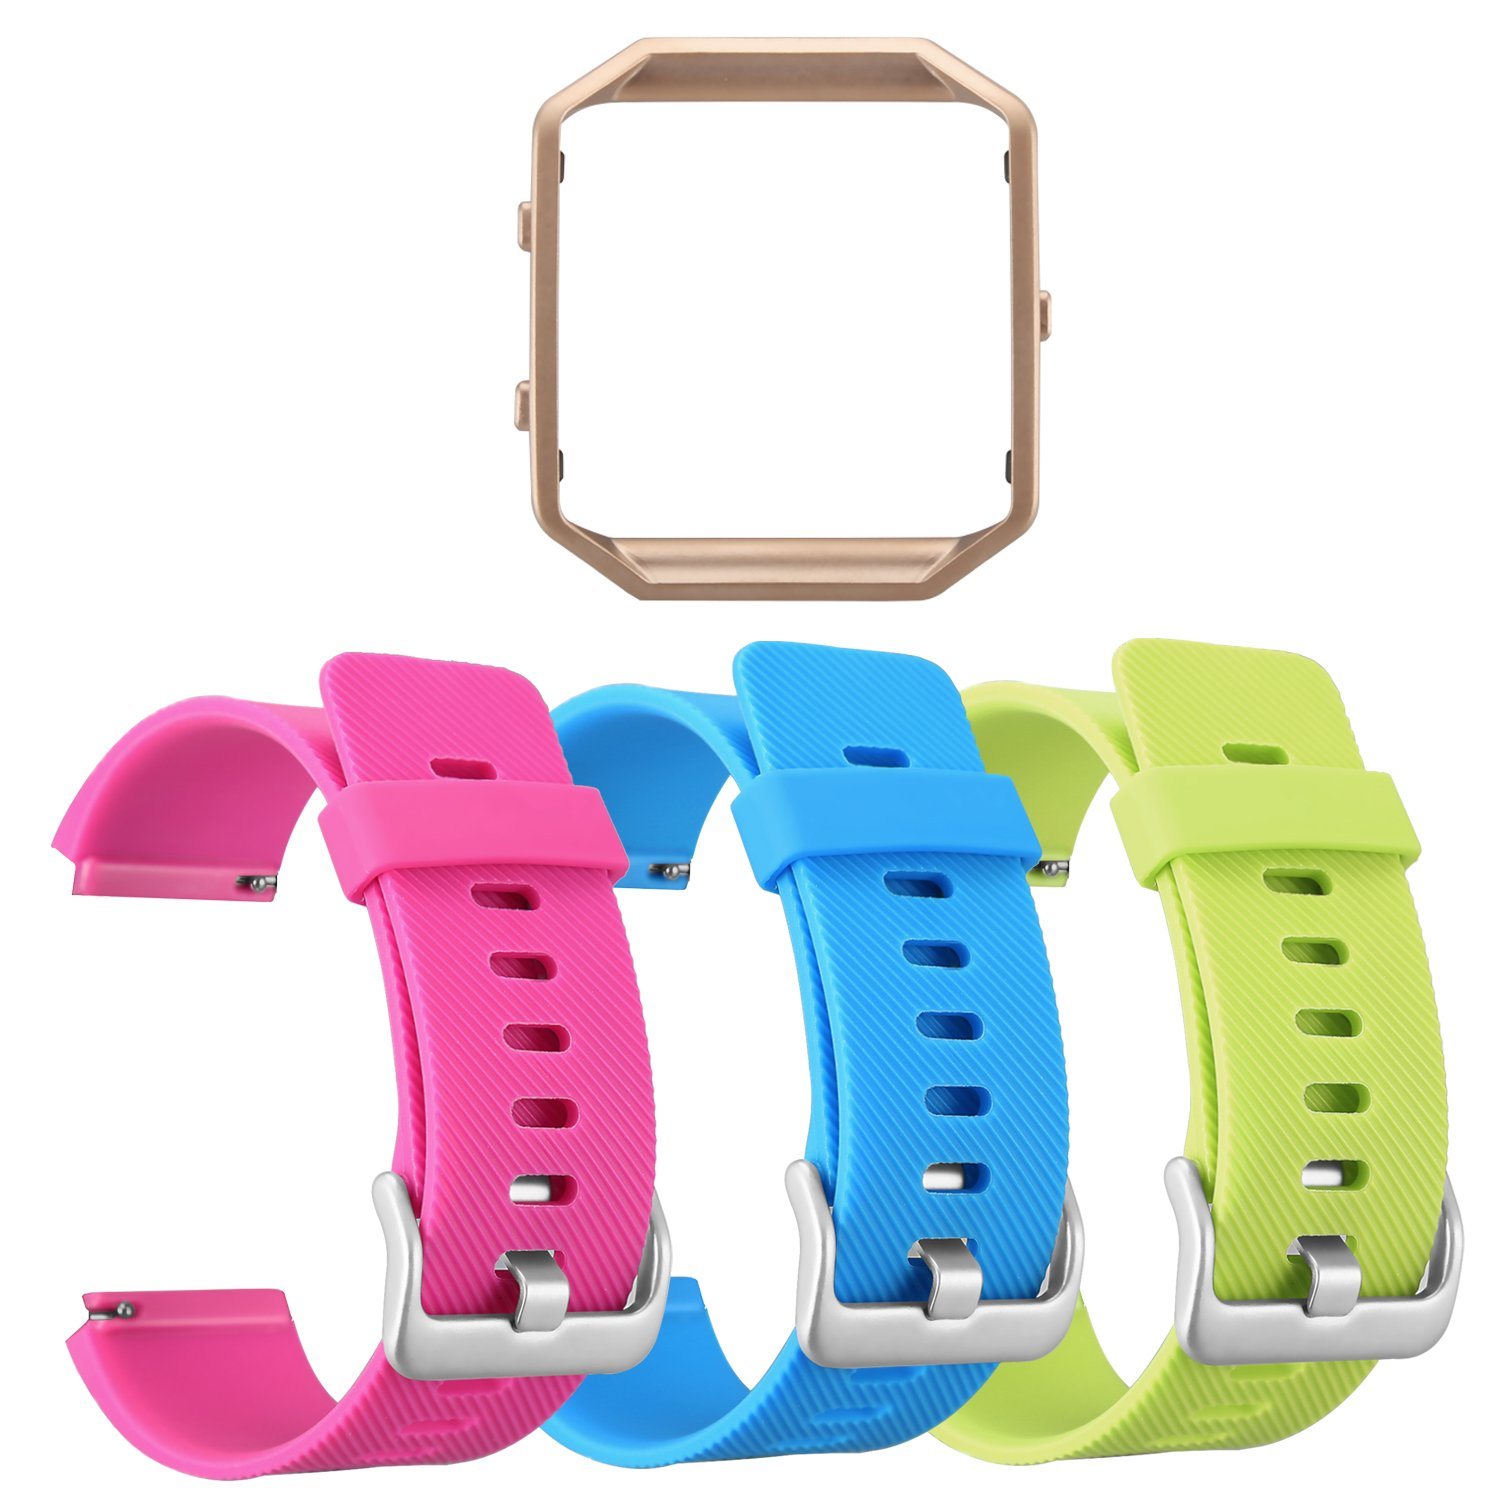 No Tracker 3 Pack Silicone Band with 1 Pcs Metal Frame for Fitbit Blaze Replacement Sport Fitness Accessory Wristband ESeekGo for Fitbit Blaze Bands